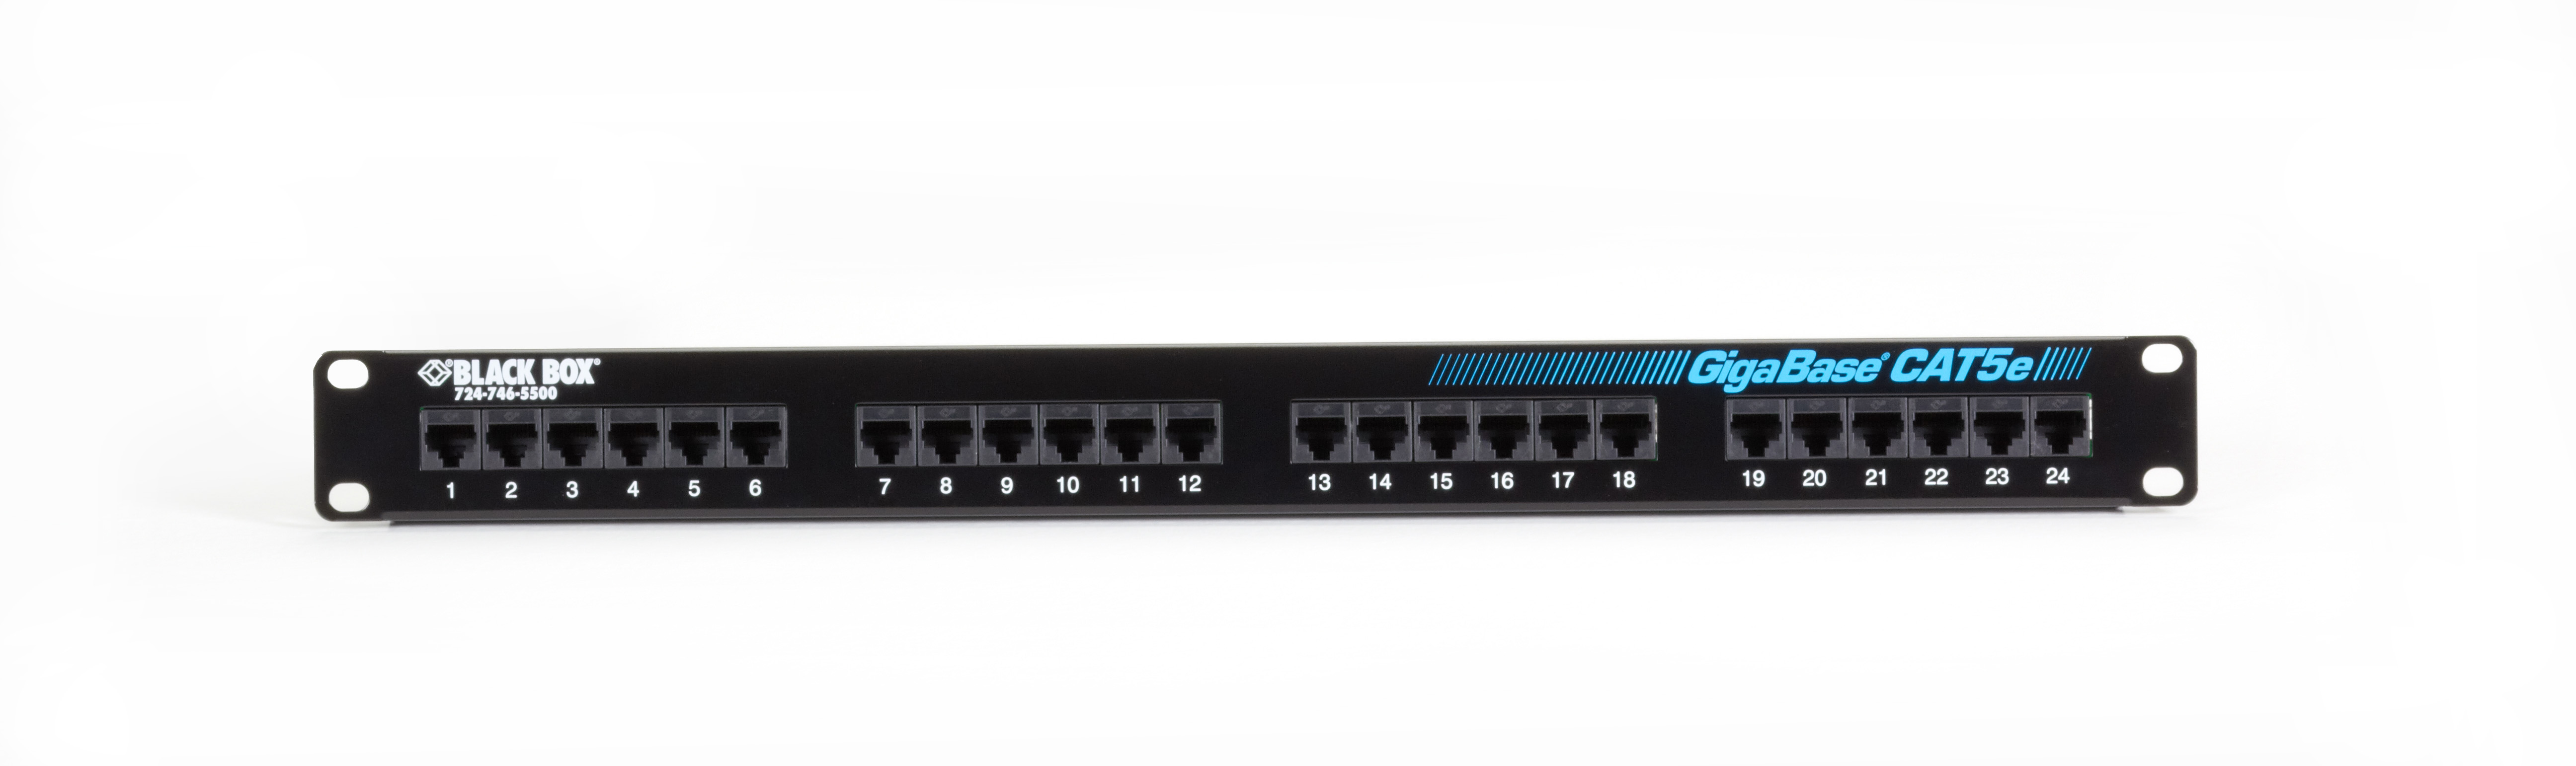 Cat5e Patch Panel 1u Unshielded 24 Port Gigabase 110 Block Enclosure Wiring Diagram Additional Product Image